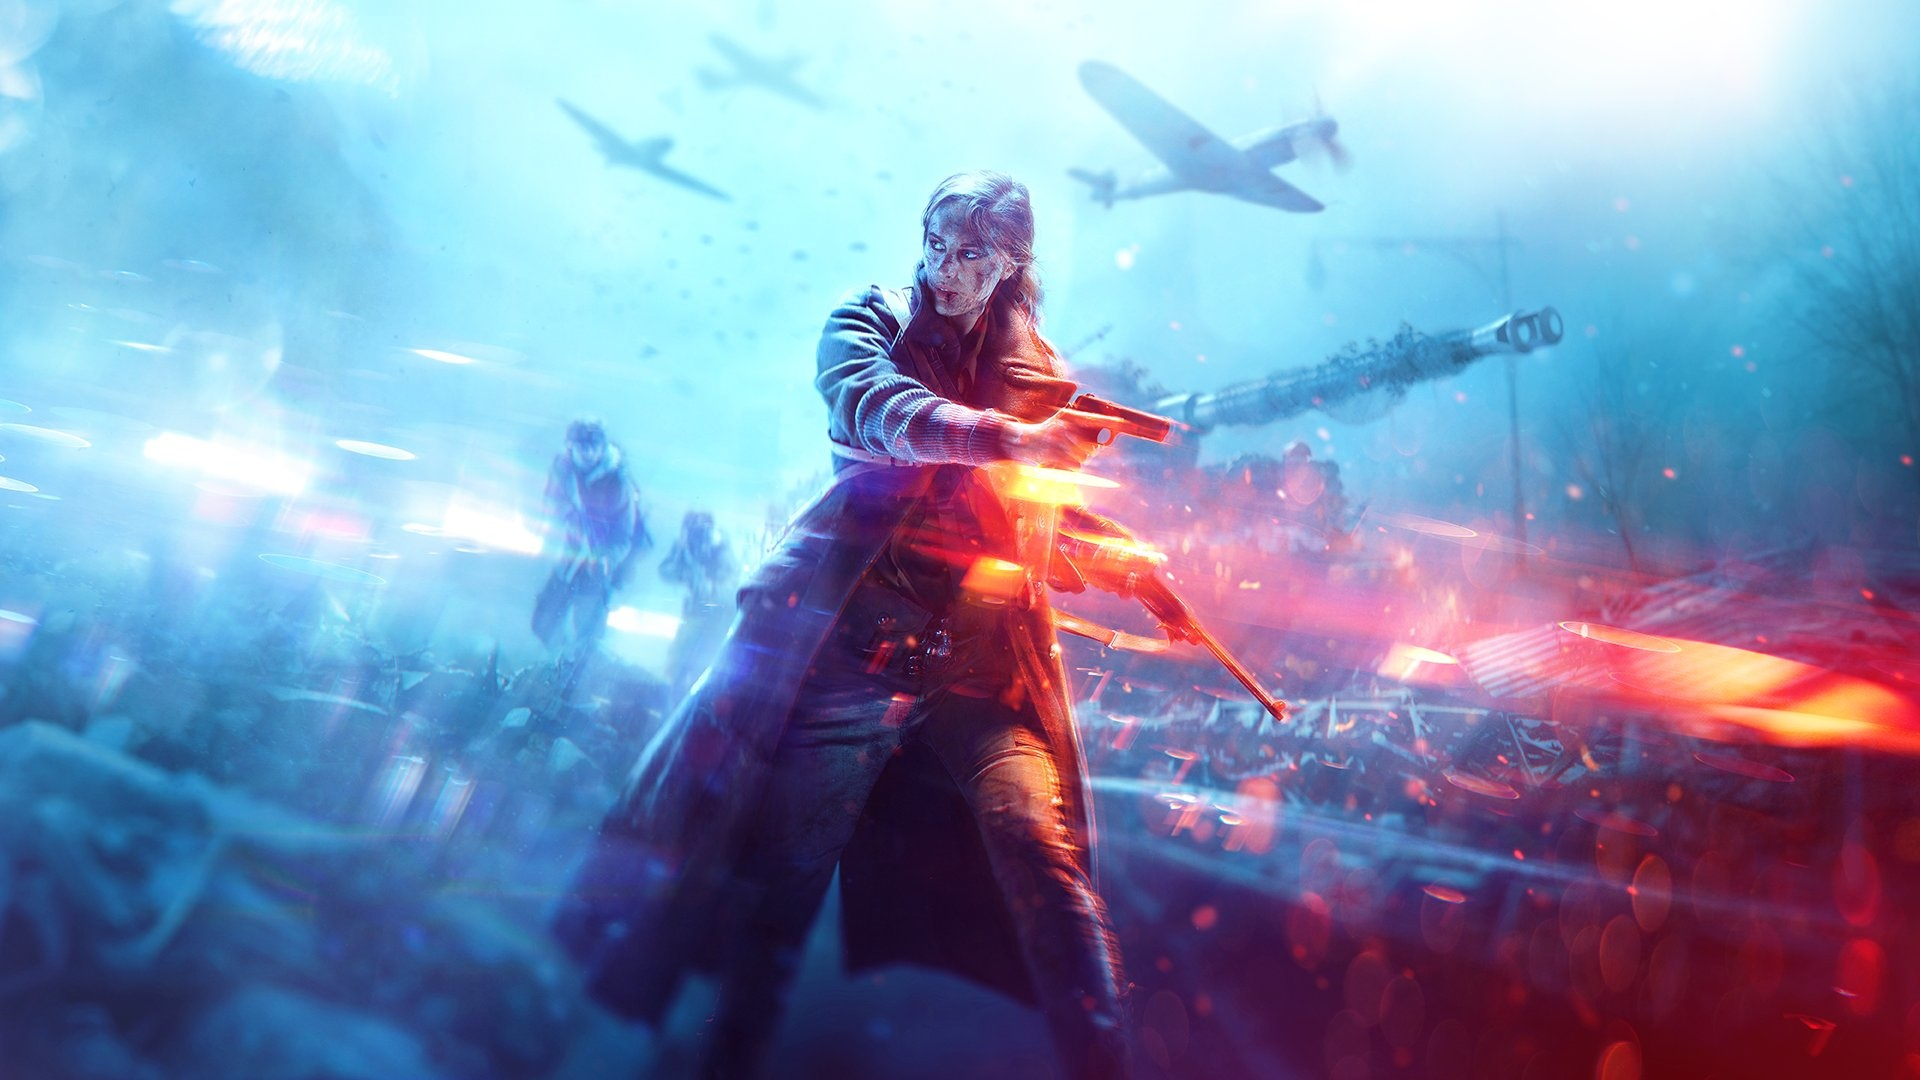 Battlefield V Steelbook without game